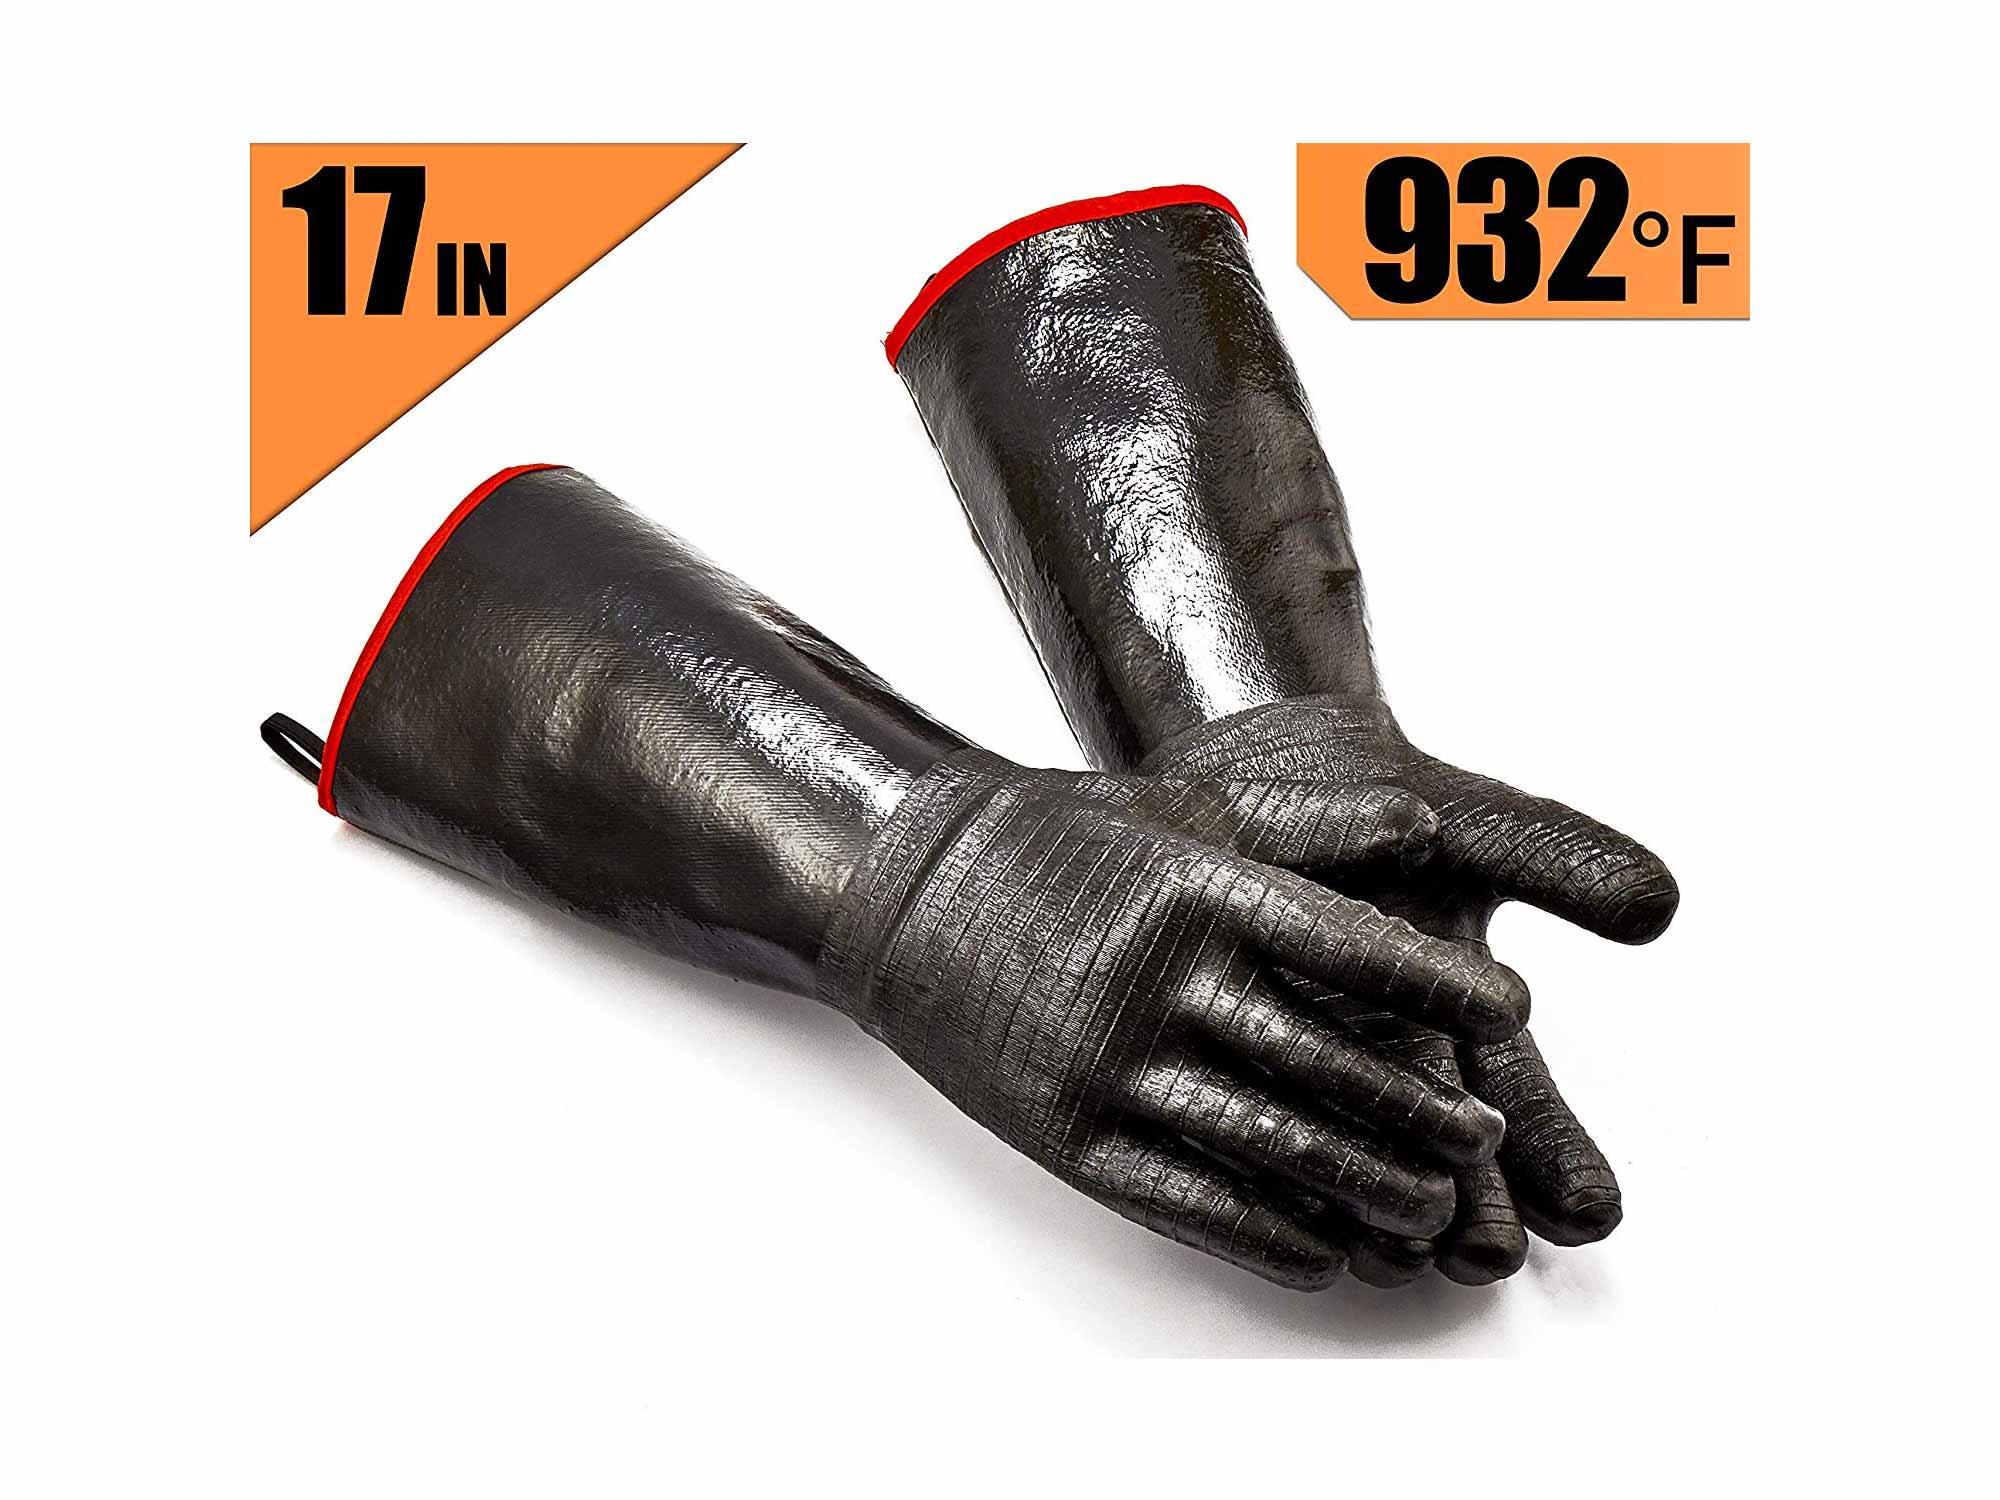 RAPICCA Grill Gloves Heat Resistant-Smoker, BBQ, Cooking Barbecue Gloves, for Handling Heat Food Right on Your Fryer, Grill or Oven. Waterproof, Fireproof, Oil Resistant Neoprene Coating